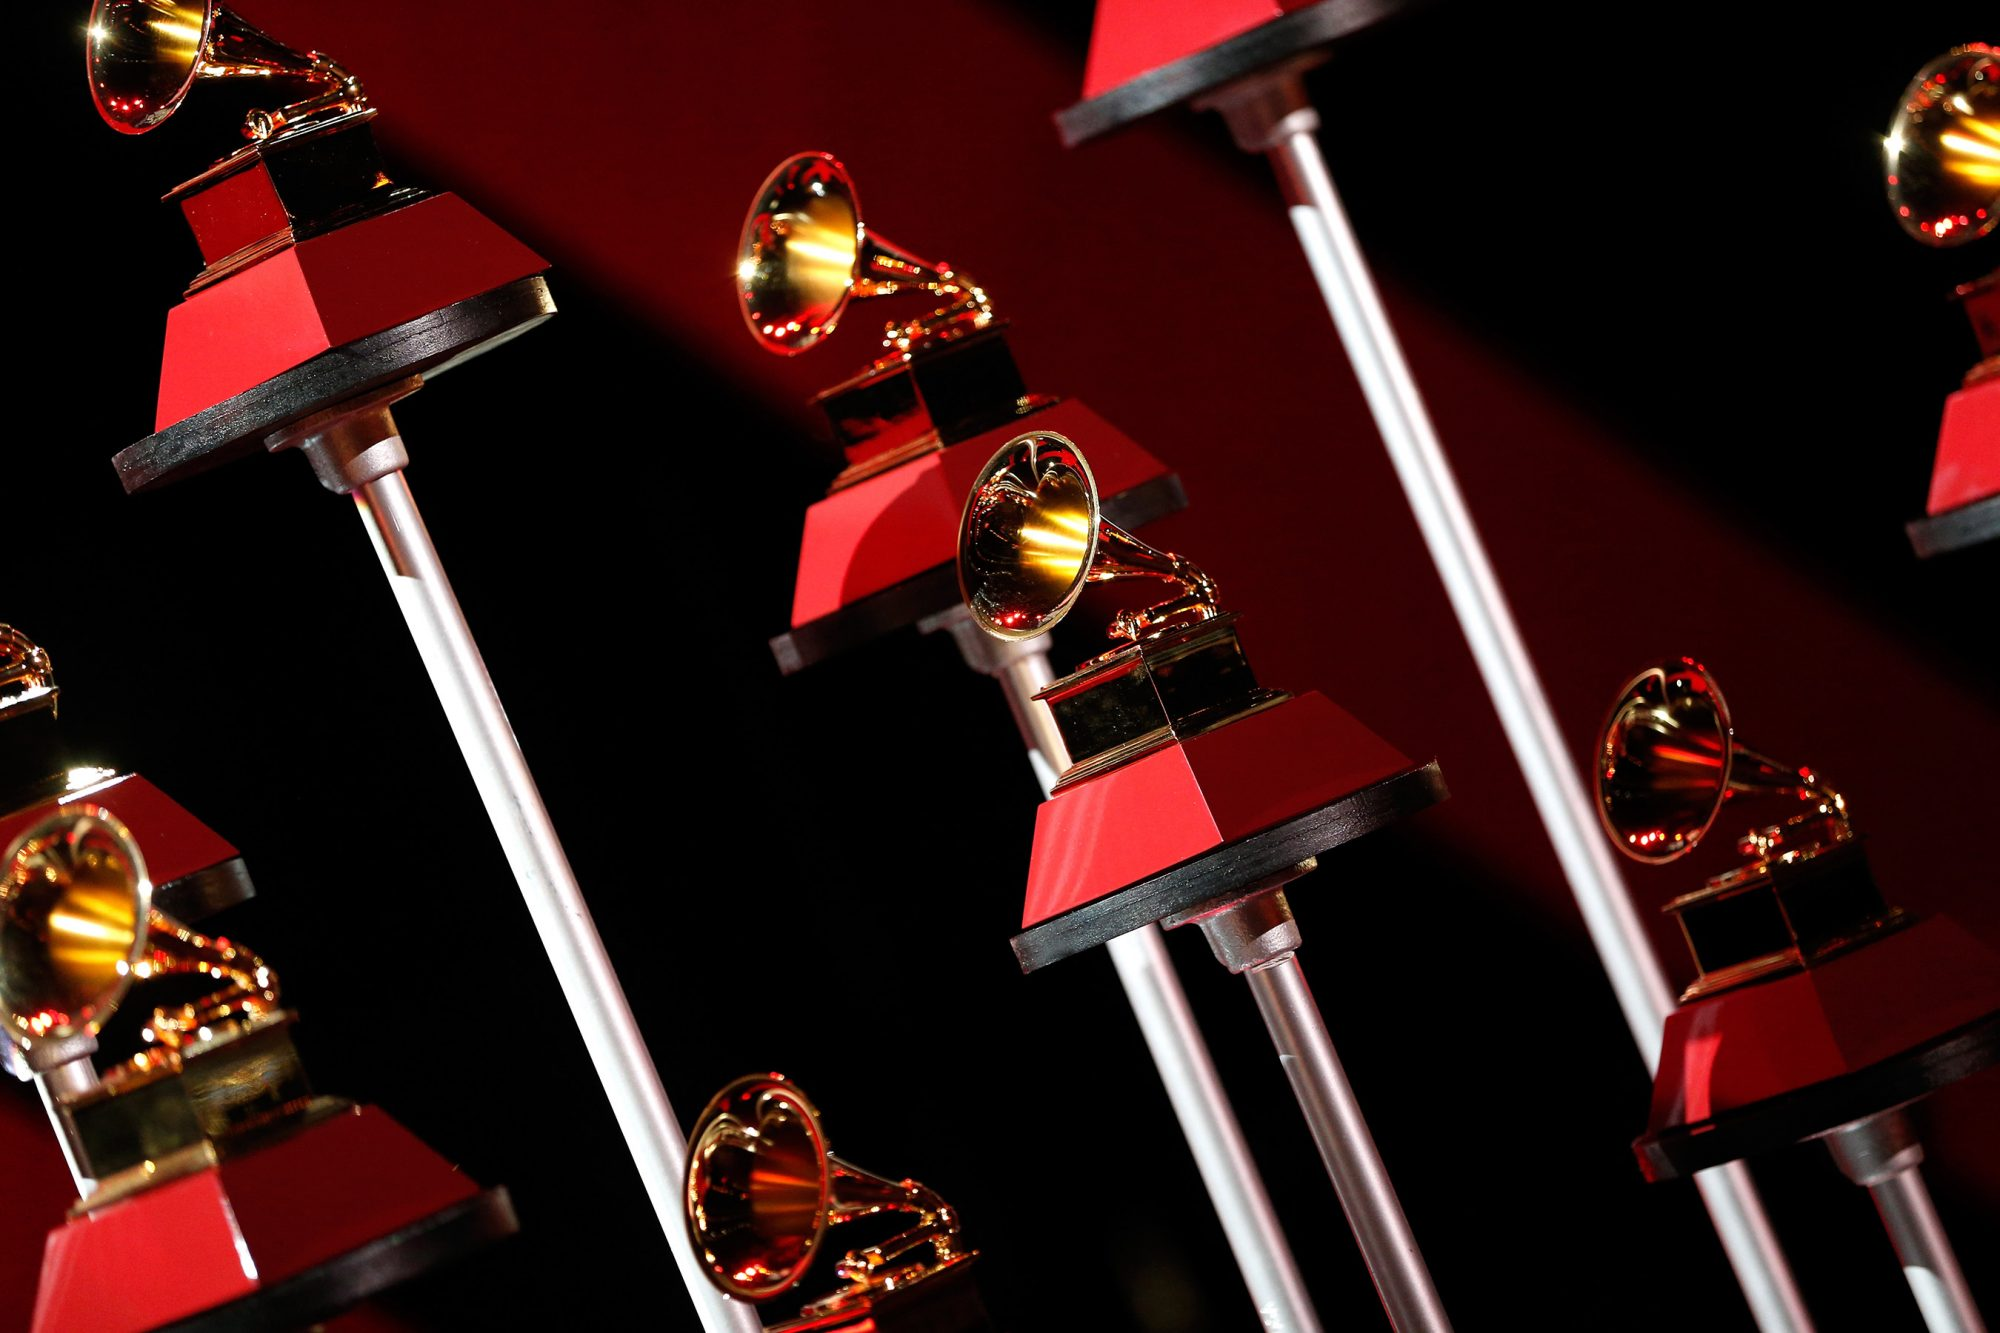 The 17th Annual Latin Grammy Awards - Premiere Ceremony